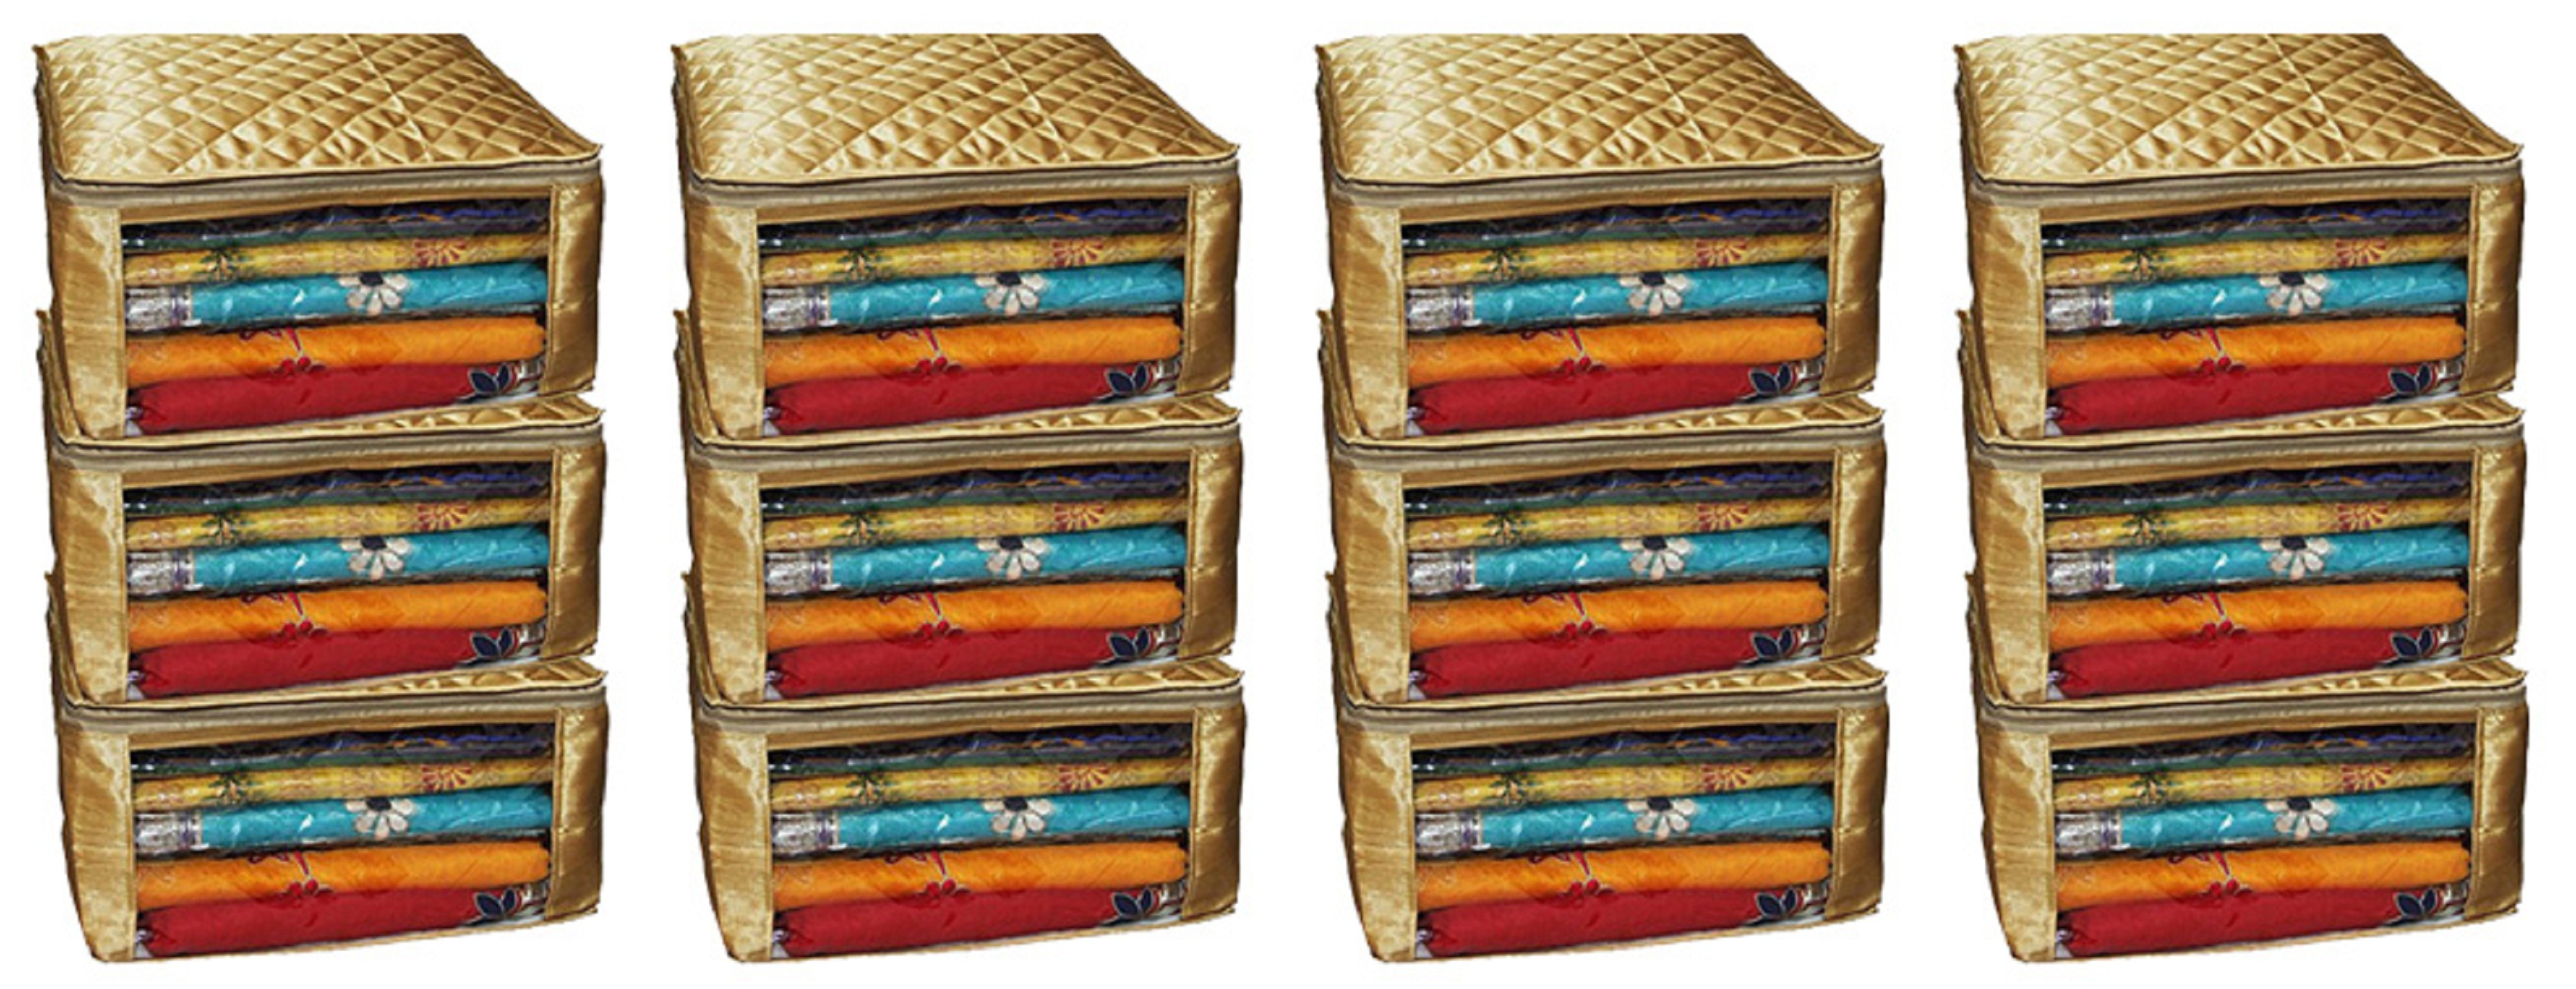 Kuber Industries Saree Cover Large Size In Golden Satin Material Set of 12 Pcs With Capacity of upto 15 Sarees each  Wedding Gift  KISC06